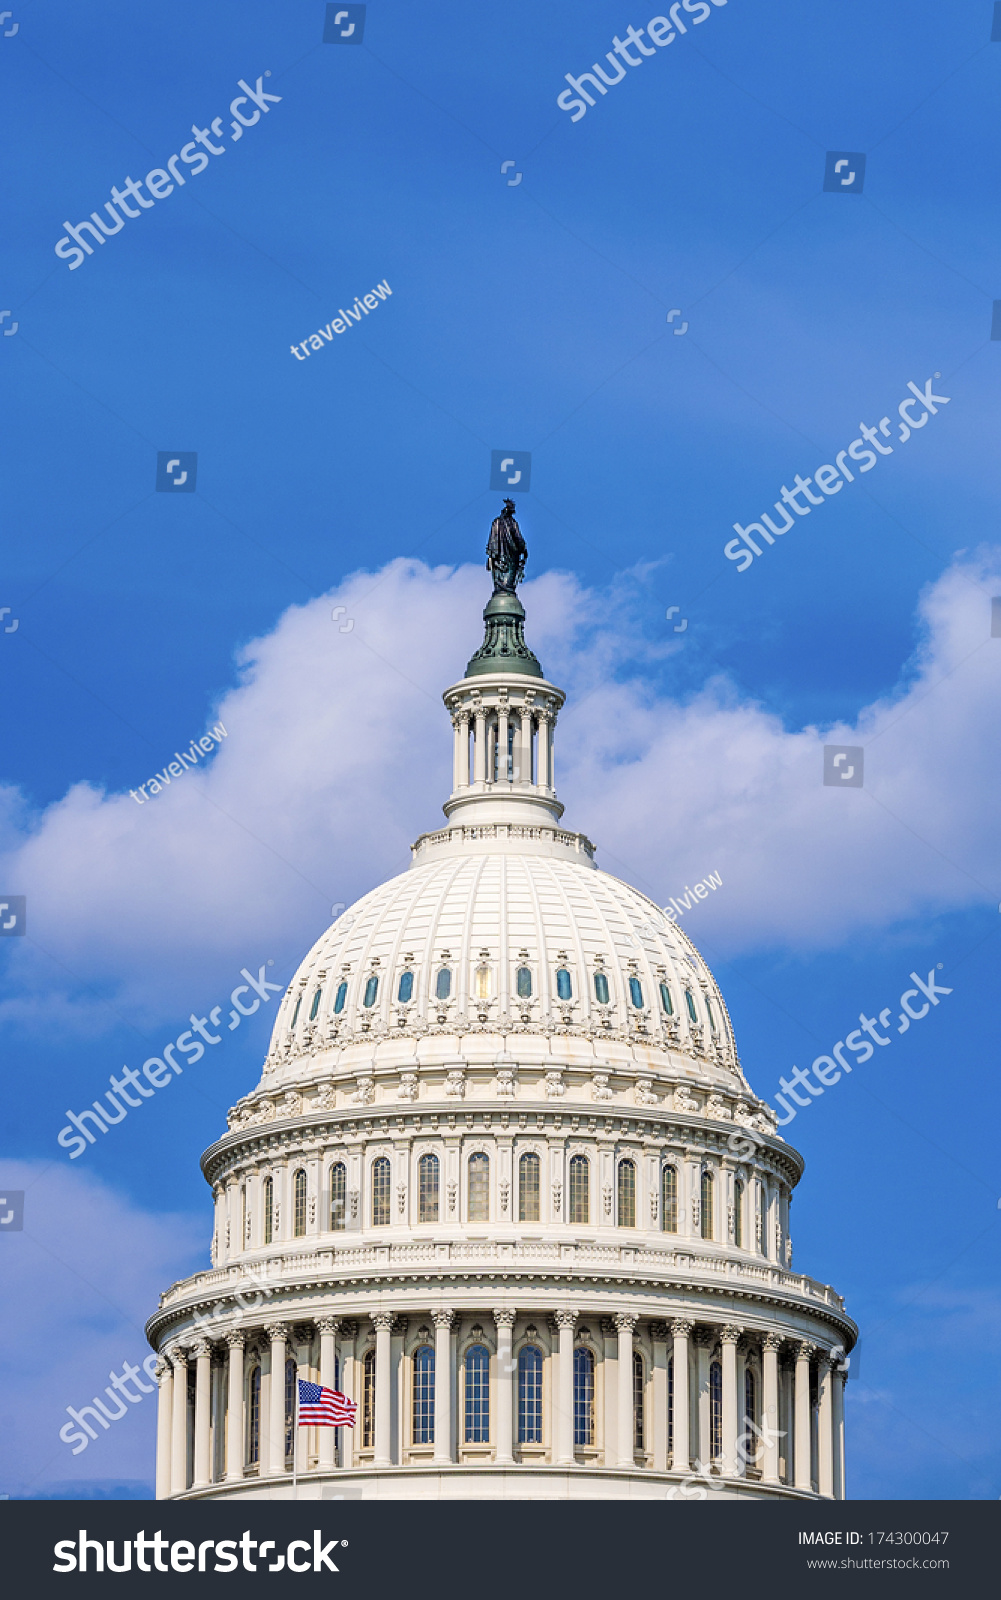 How did Washington, D.C. become the capital of the United ...